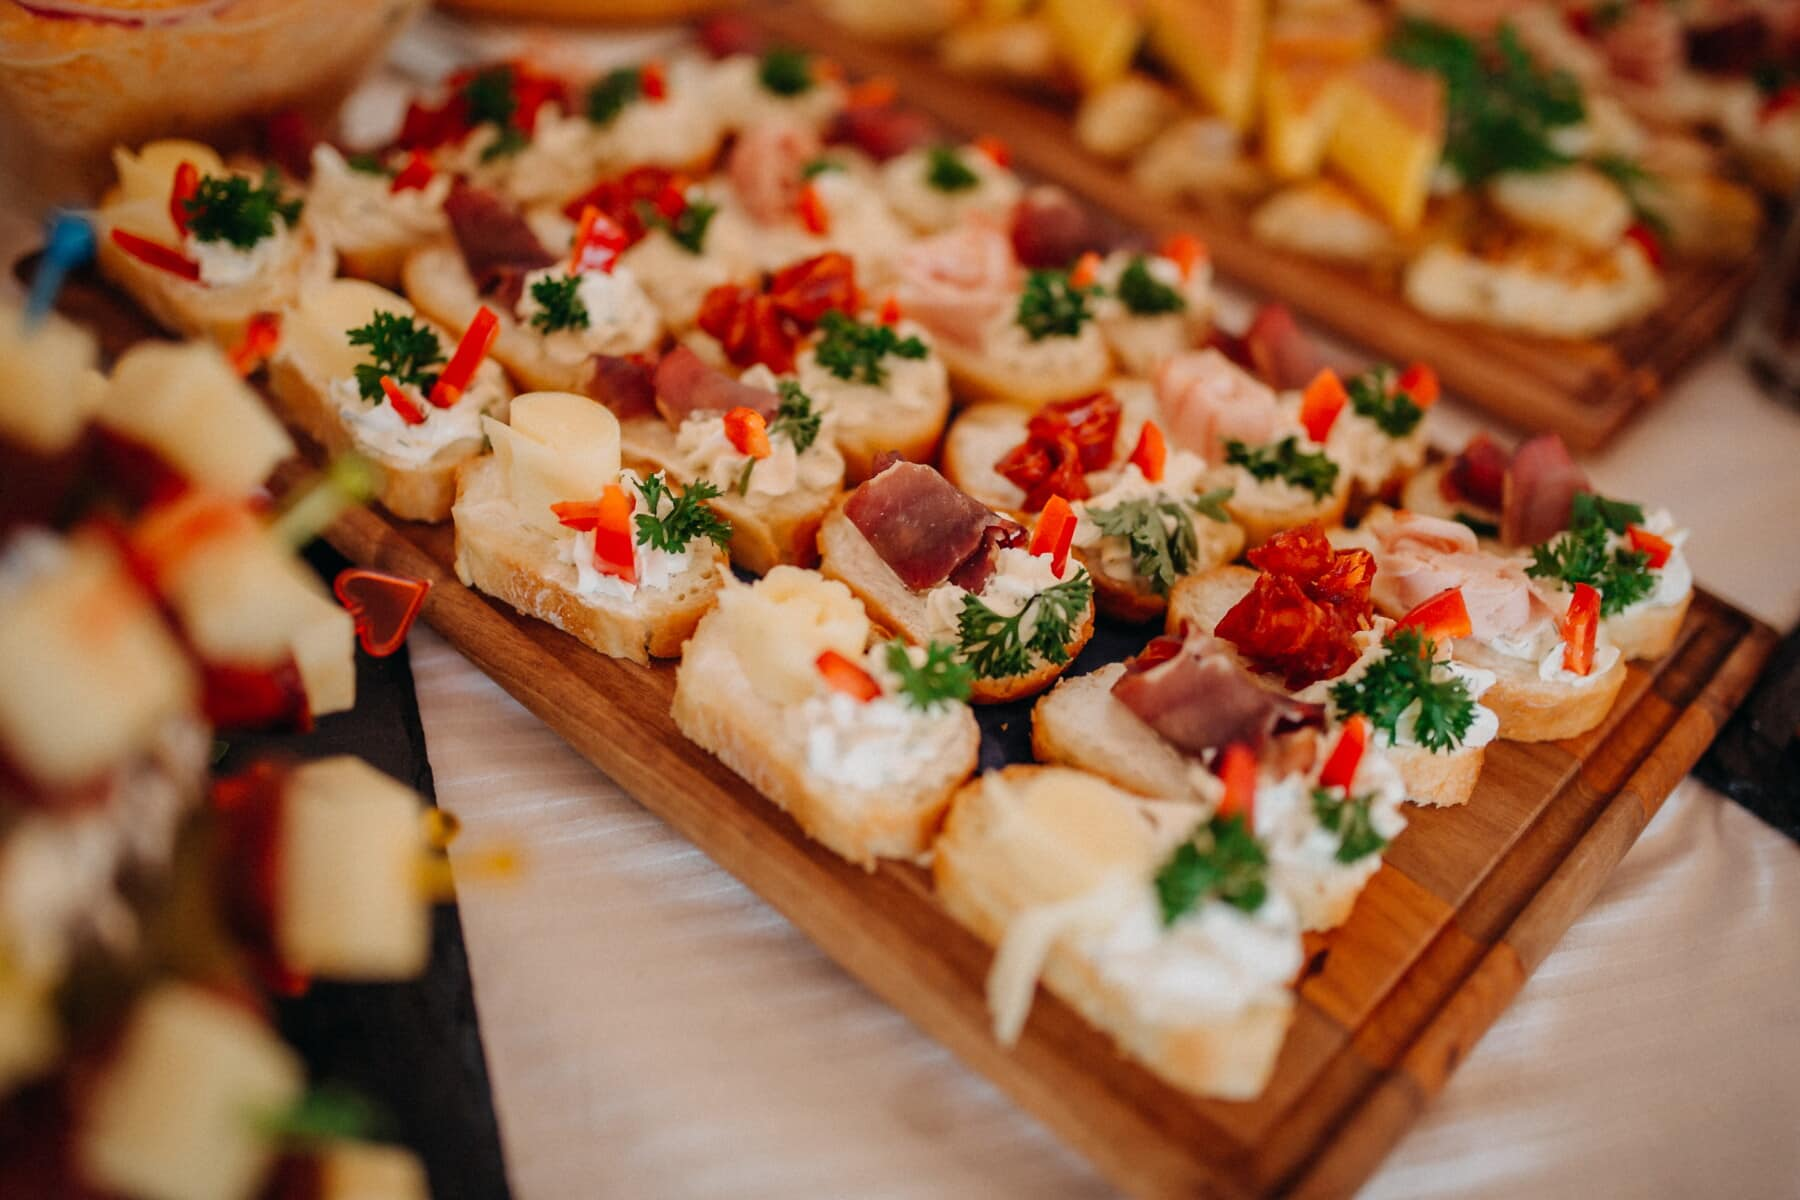 miniature, sandwich, ham, cheese, snack, buffet, appetizer, lunch, delicious, dinner